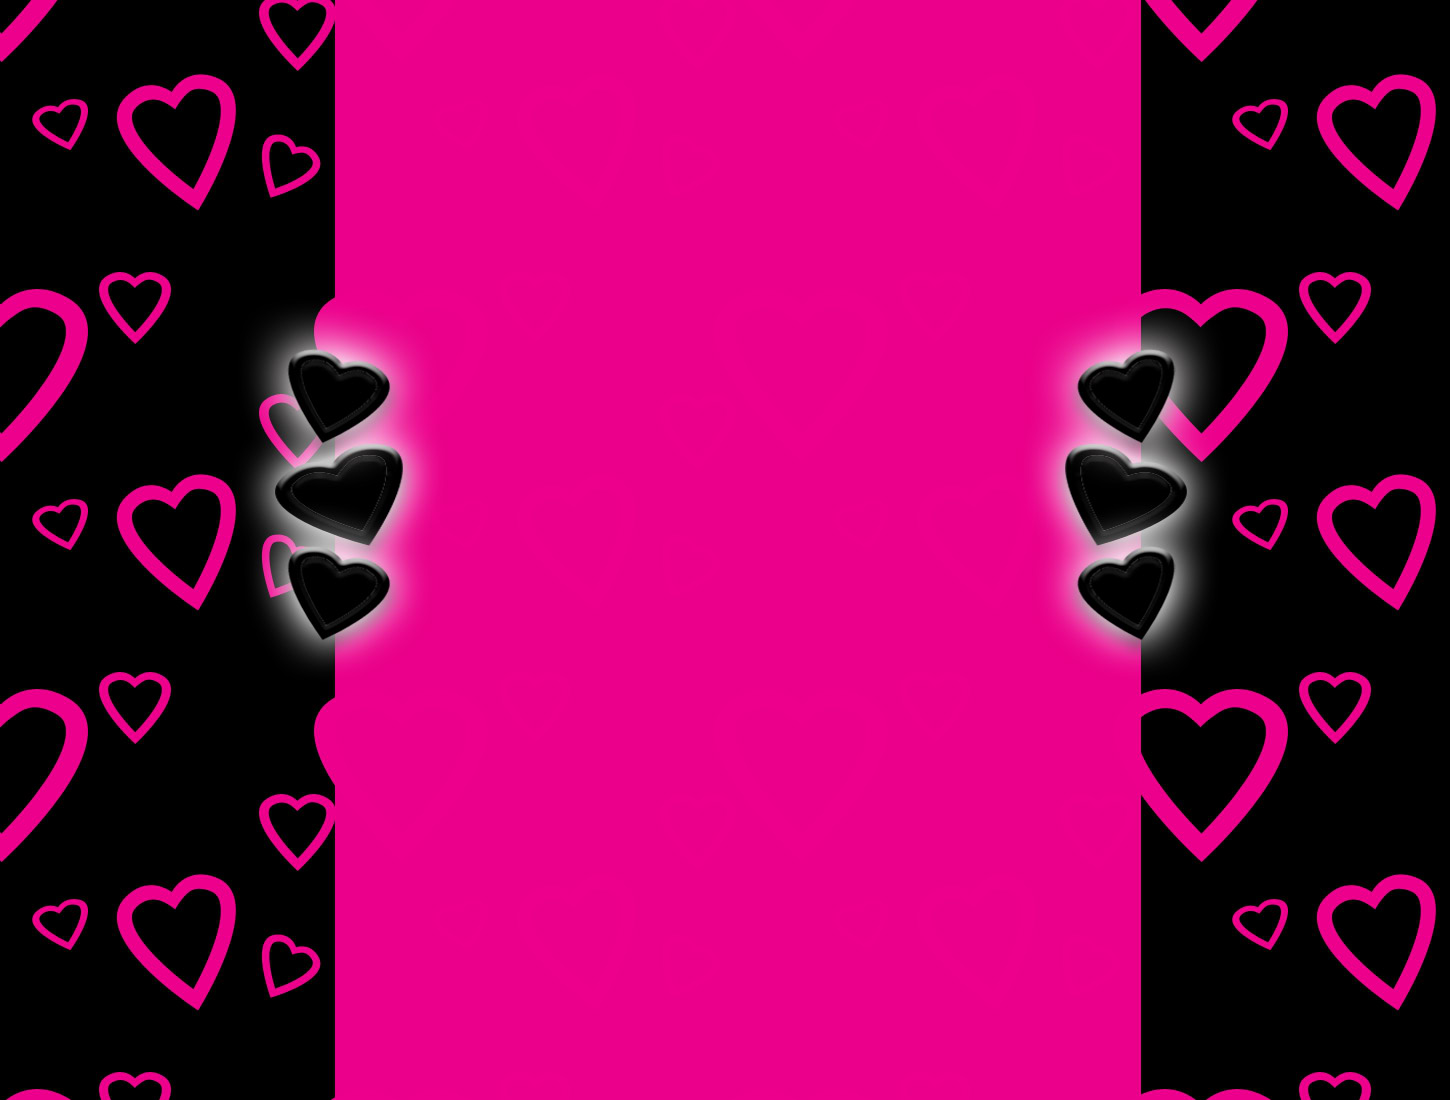 Zebra Heart Backgrounds